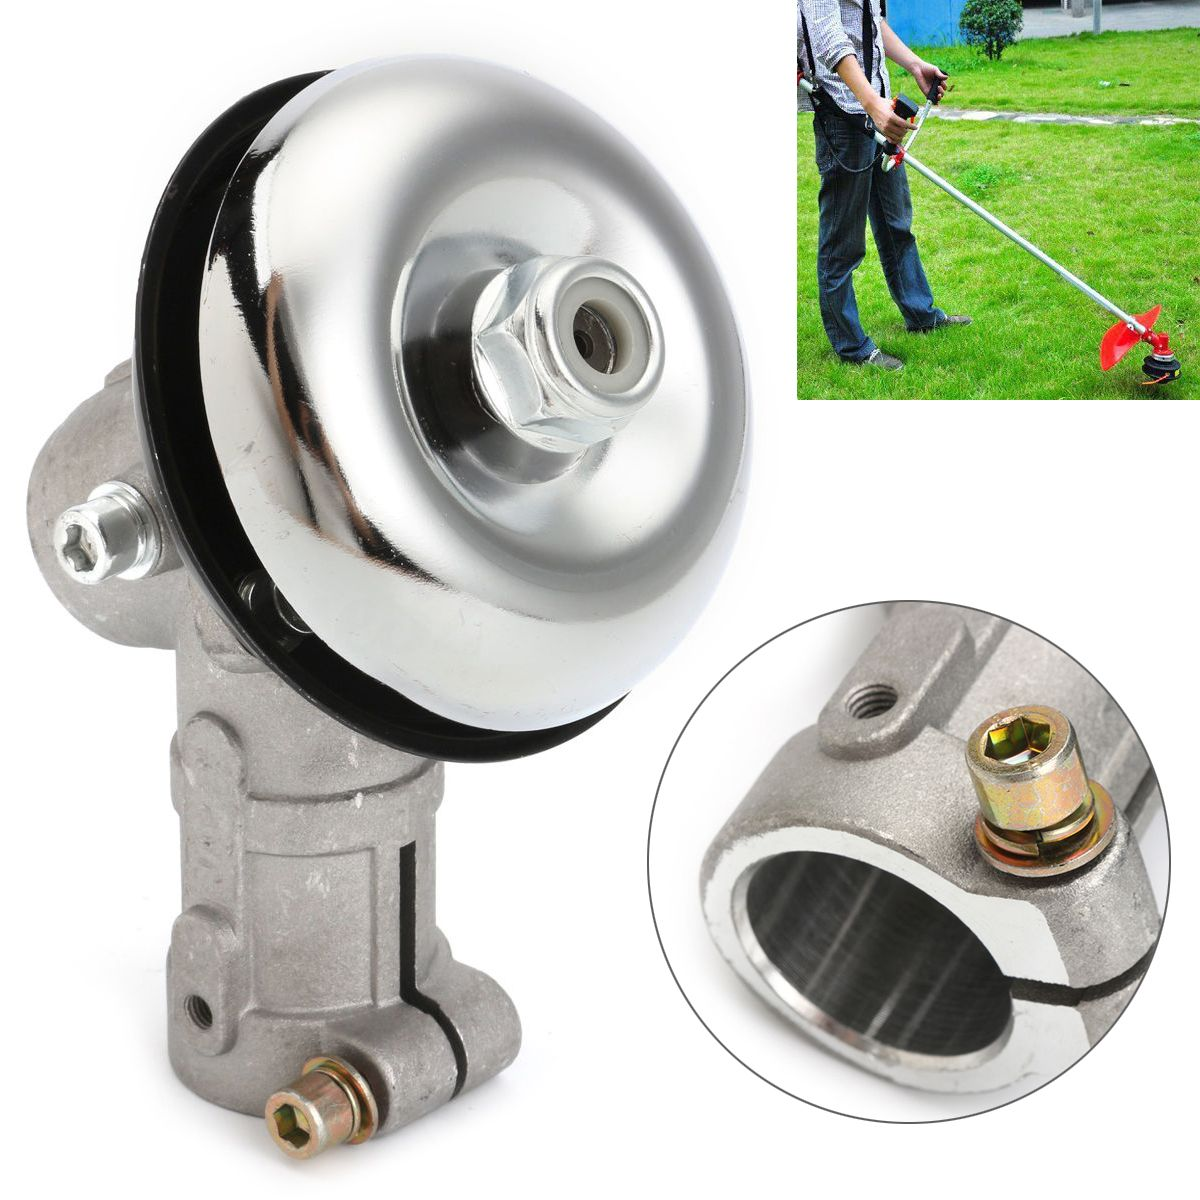 High Quality 26mm 7 Tooth Splin Gearhead Gearbox for Trimmer Strimmer Brush Cutter Lawnmower Mayitr Garden Tools top quality 7 tooth 26mm splin gearhead gearbox for strimmer brush cutter replacement garden tools mayitr